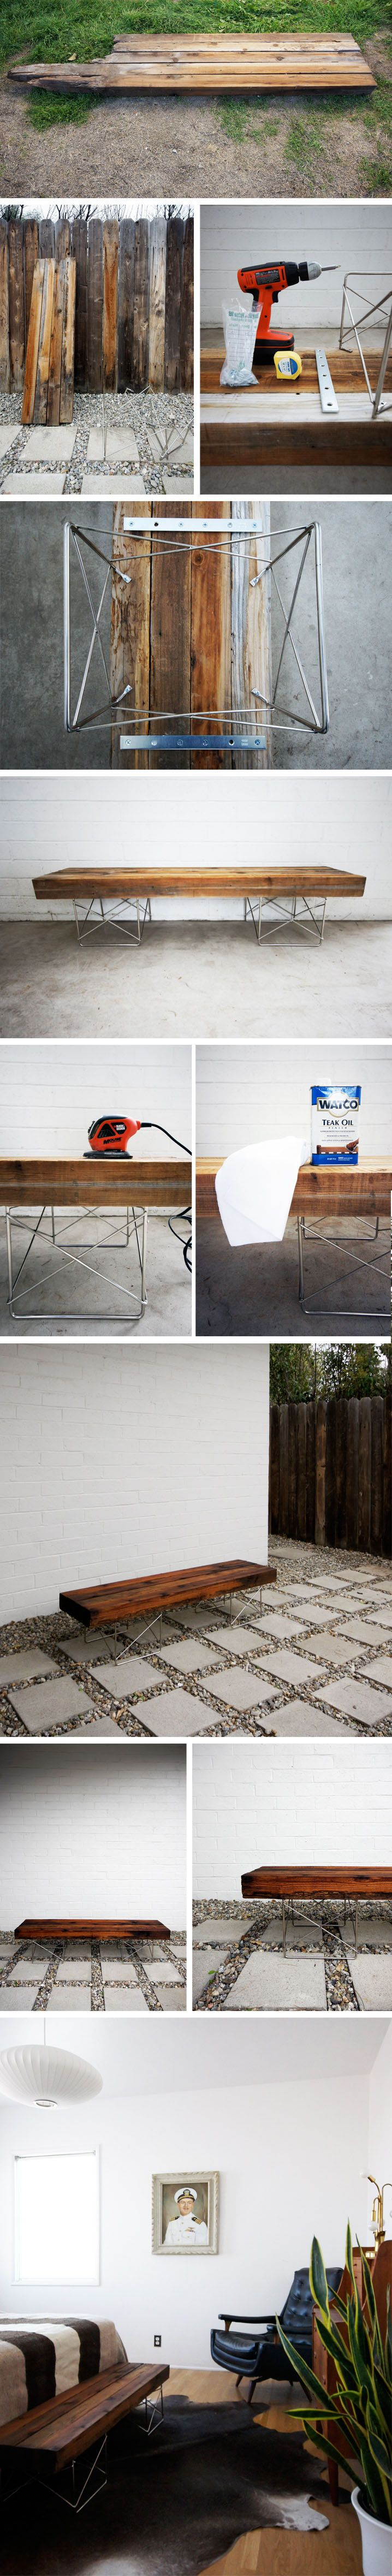 46 best Furniture images on Pinterest | Diner table, Dining room and ...